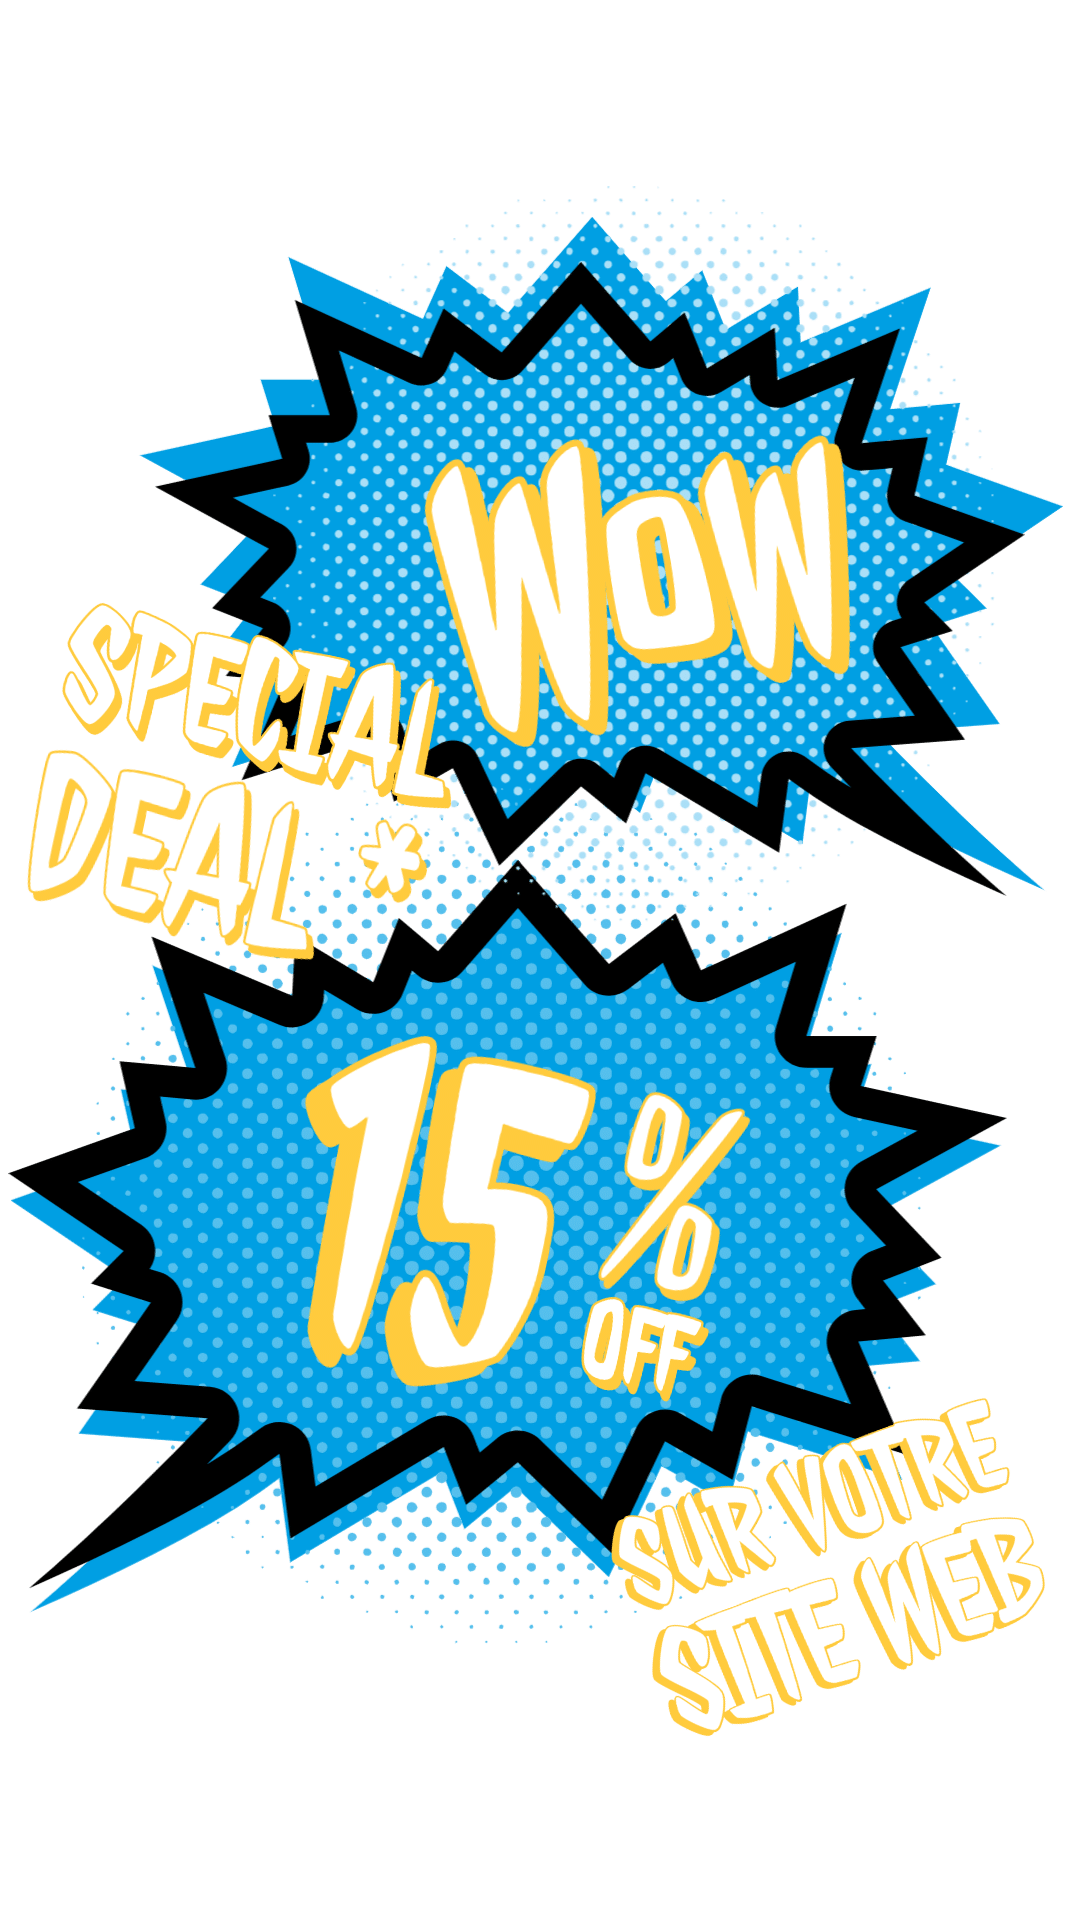 tarifs sites web remise special deal